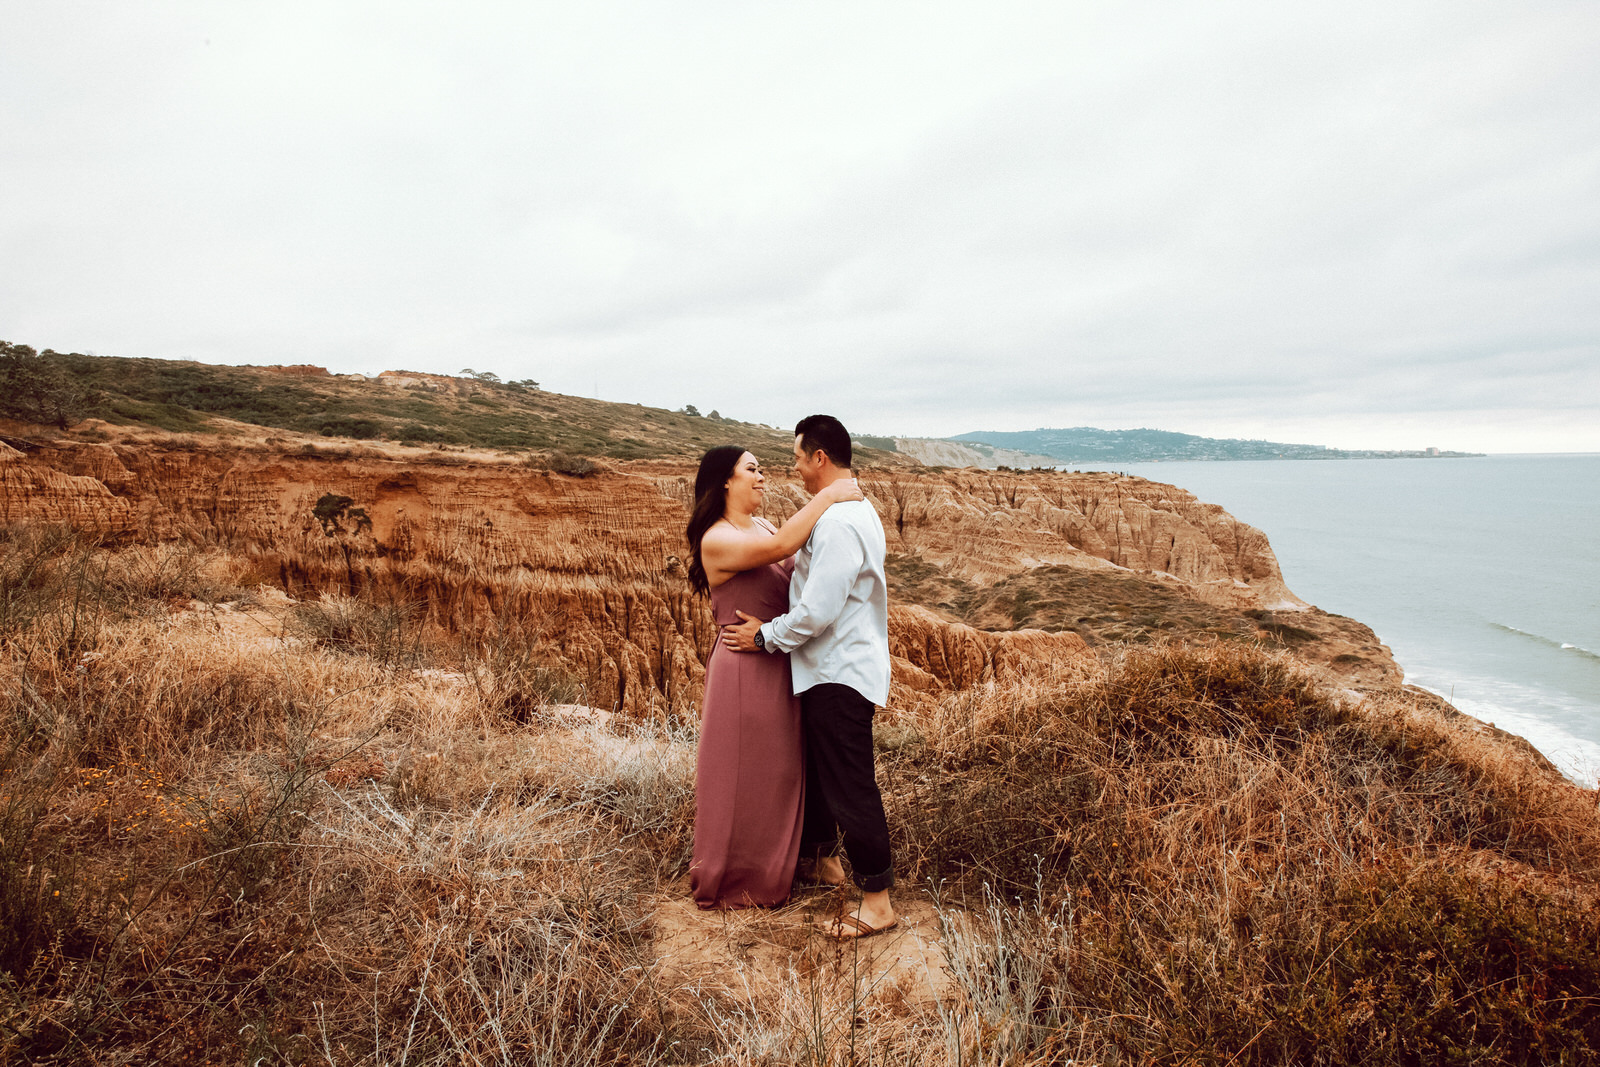 A man and a woman standing on a cliff with brown vegetation all around them holding on to each other and smiling